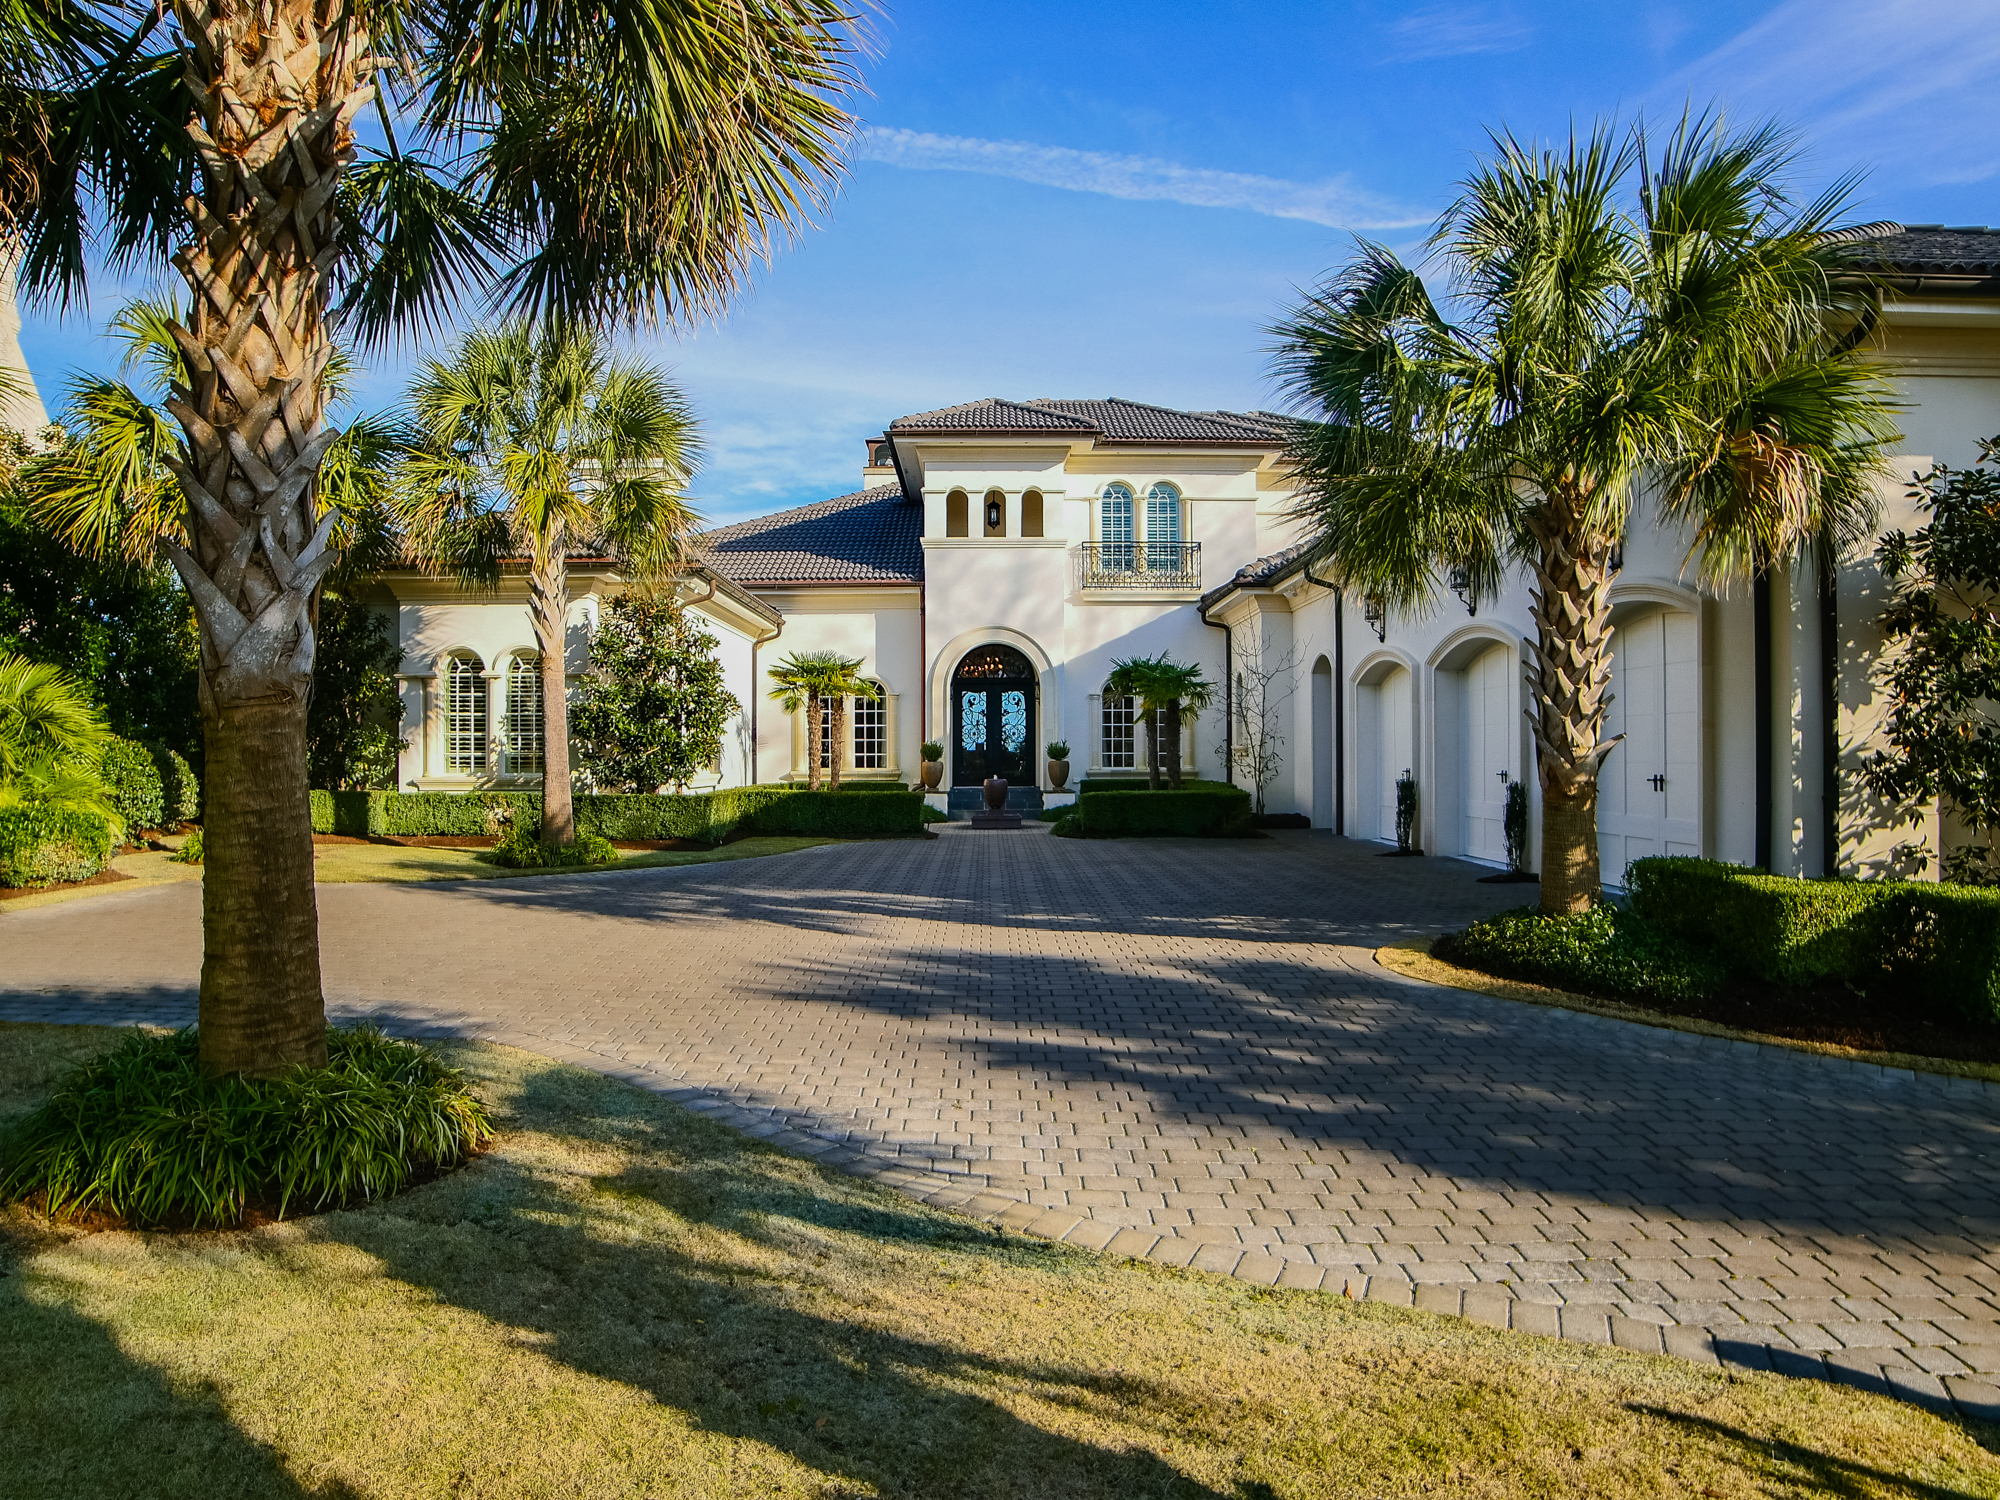 Single Family Home for Sale at Spectacular Mediterranean Revival 2336 Ocean Point Drive Landfall, Wilmington, North Carolina, 28405 United States